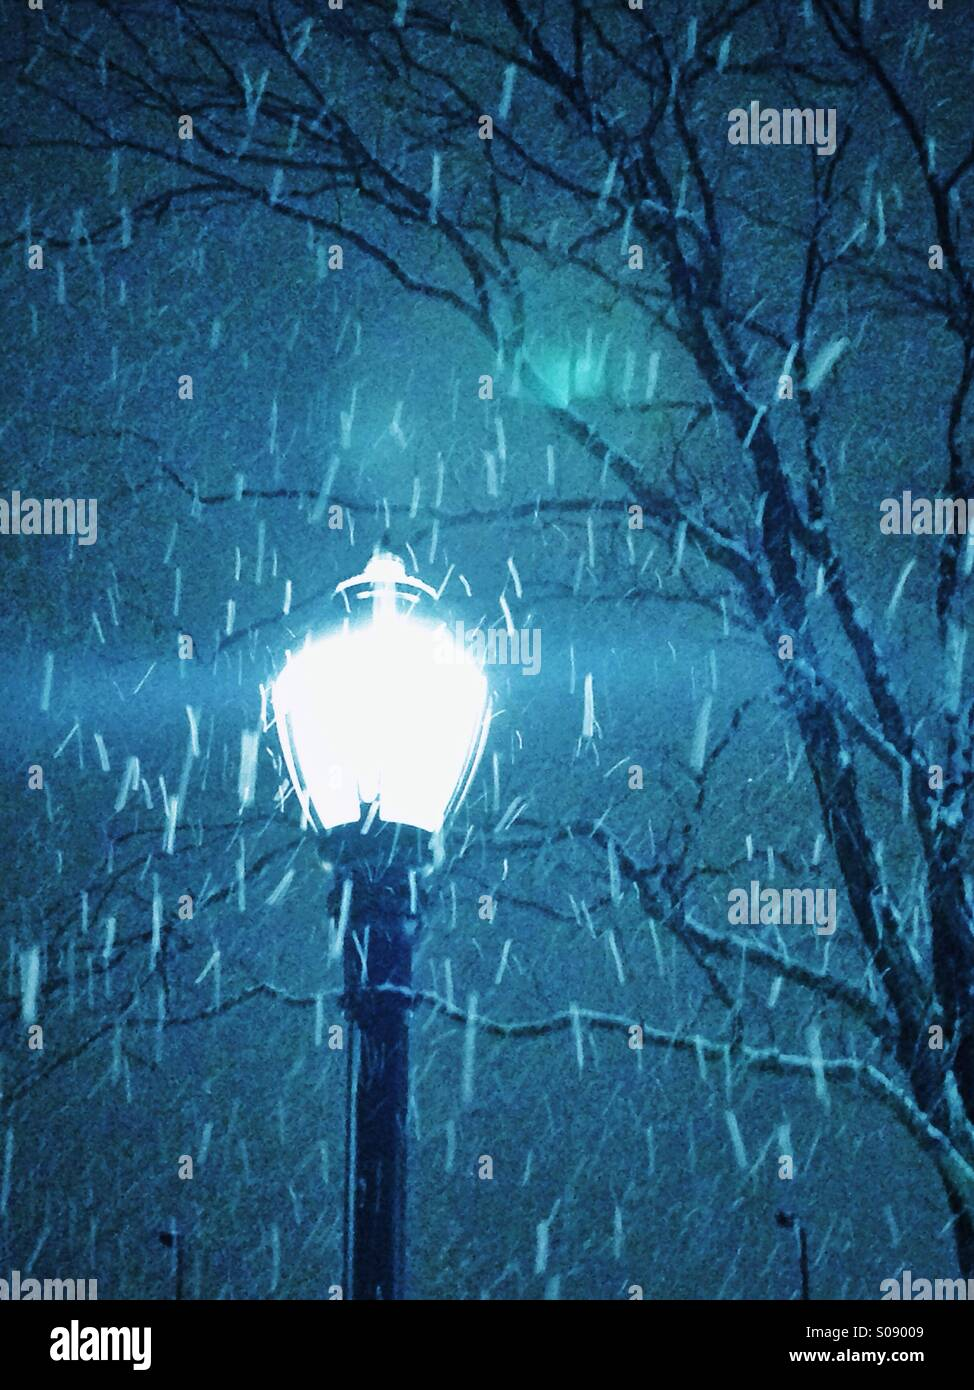 Snowfall in lamplight. - Stock Image